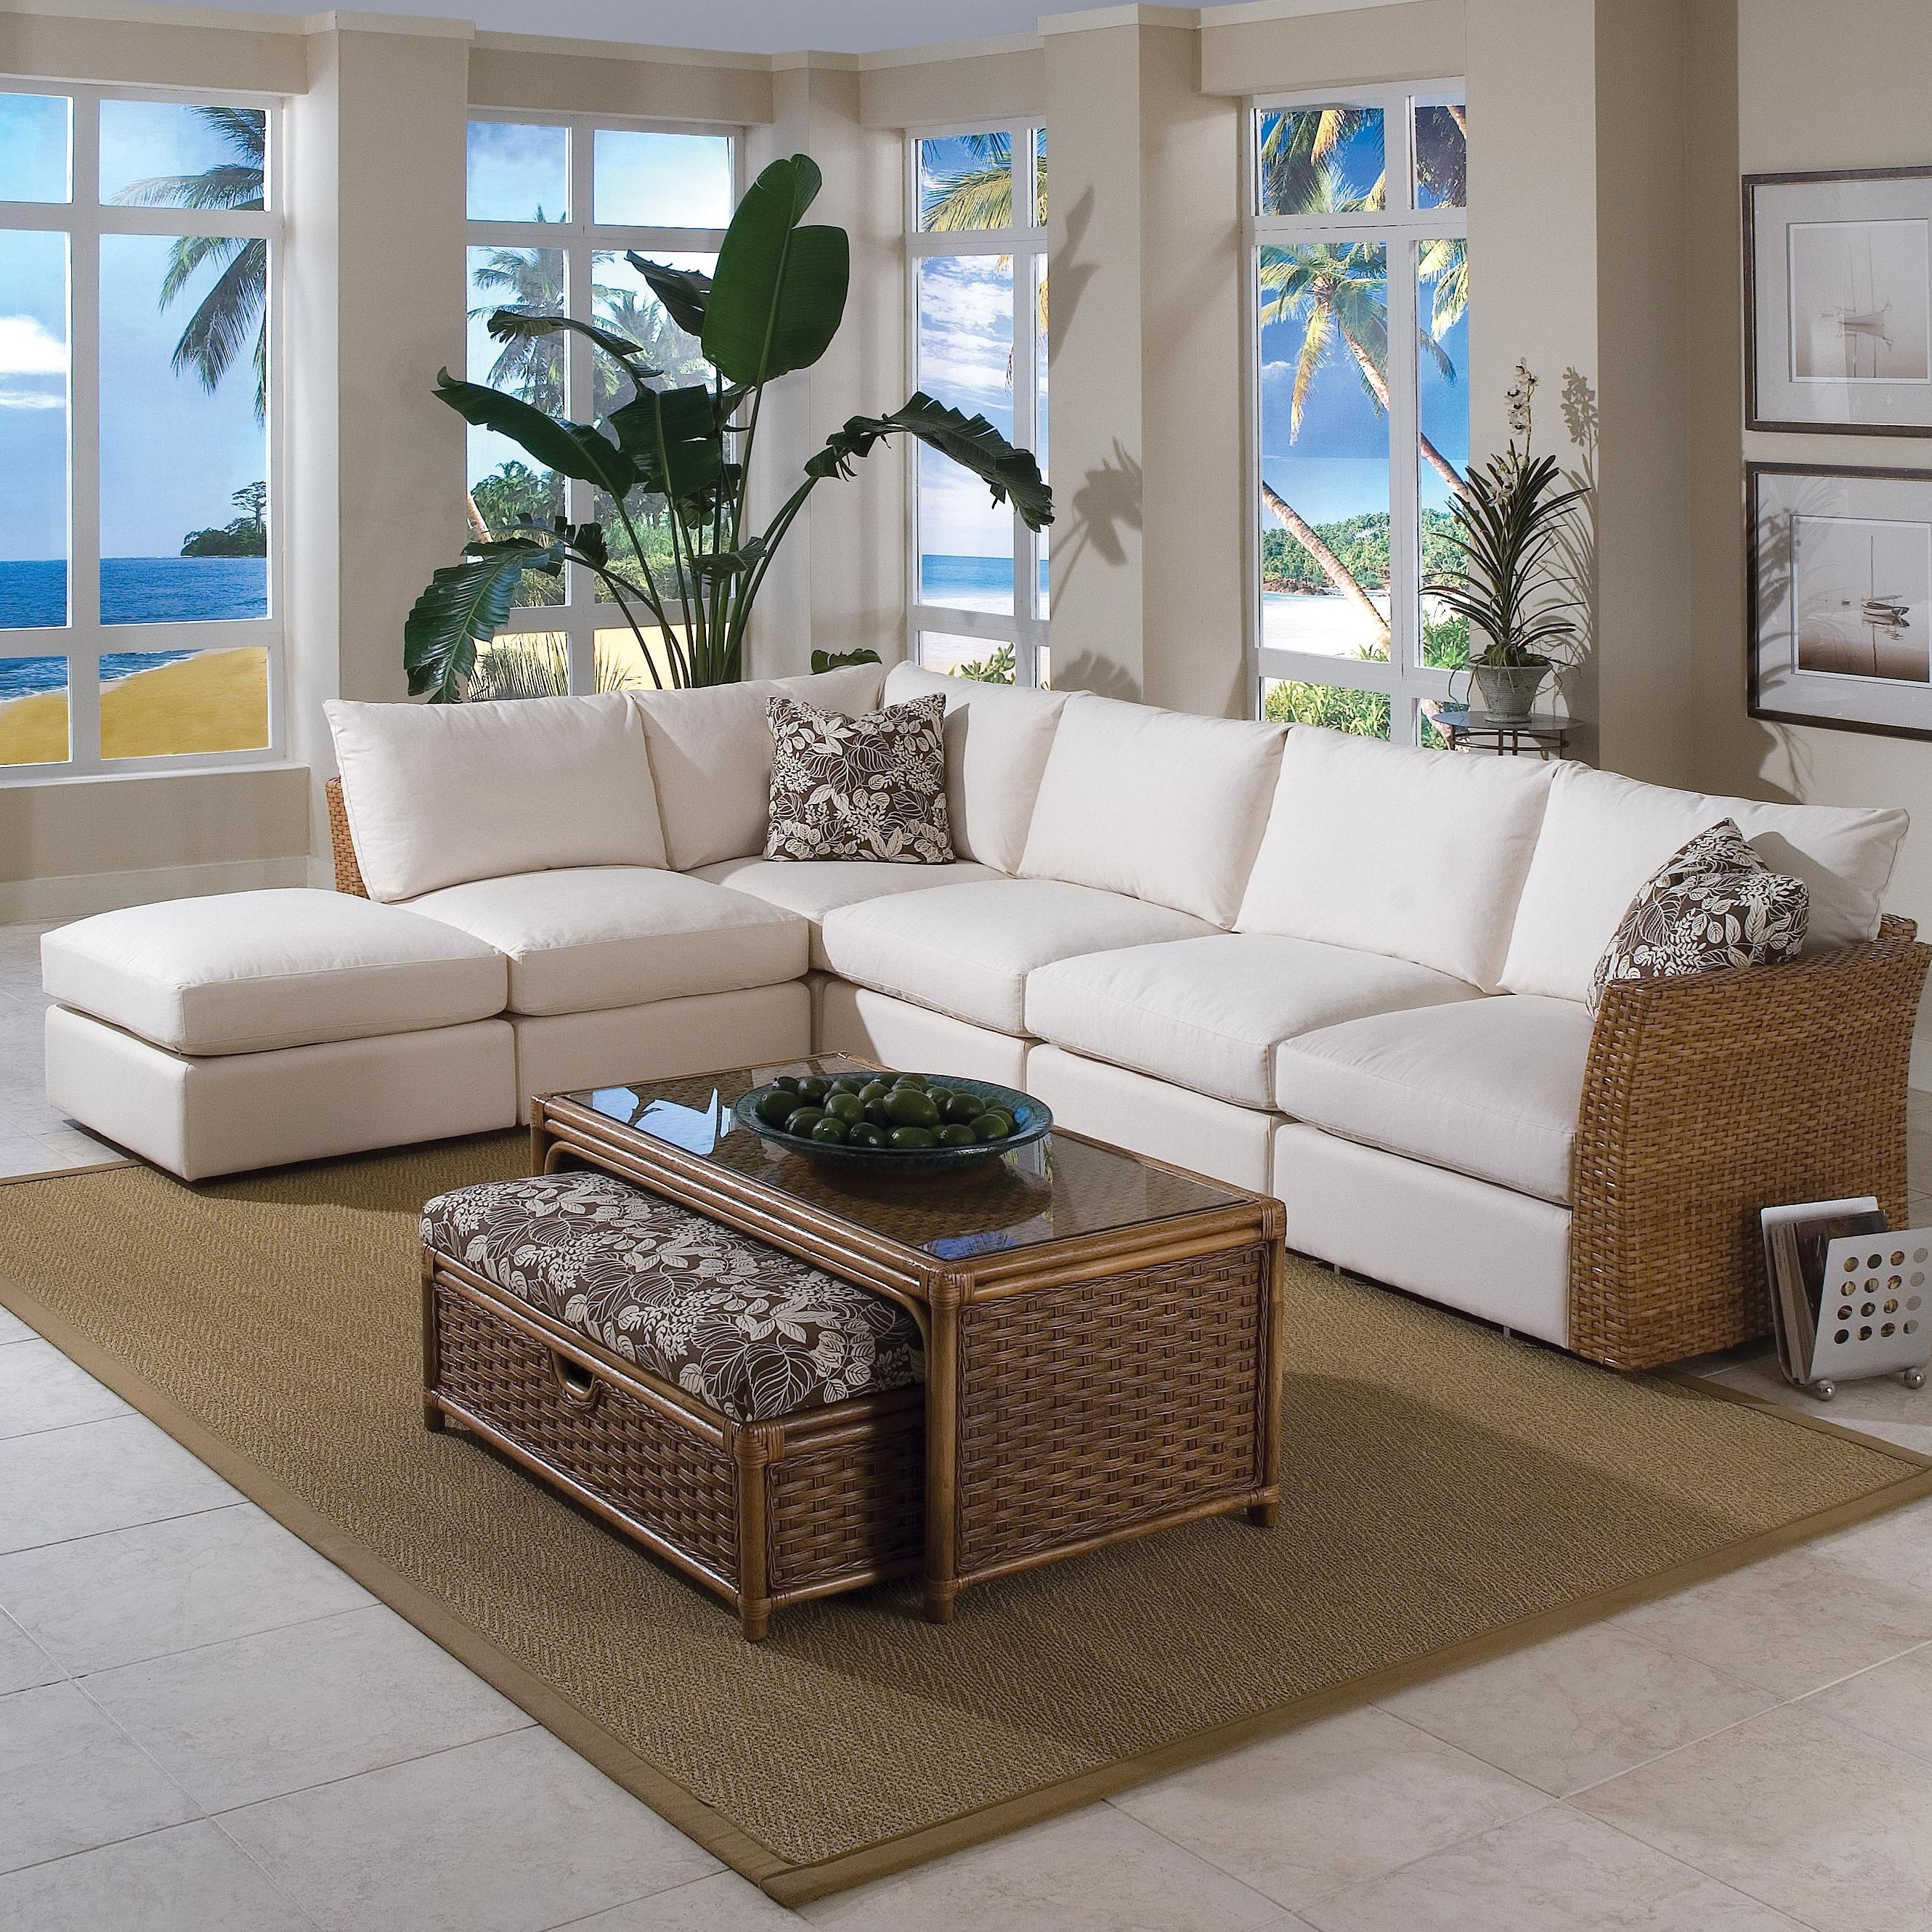 Charming Sectional Sofas Havertys 99 For Your L Shaped Sectional Throughout Sectional Sofas At Havertys (View 3 of 15)